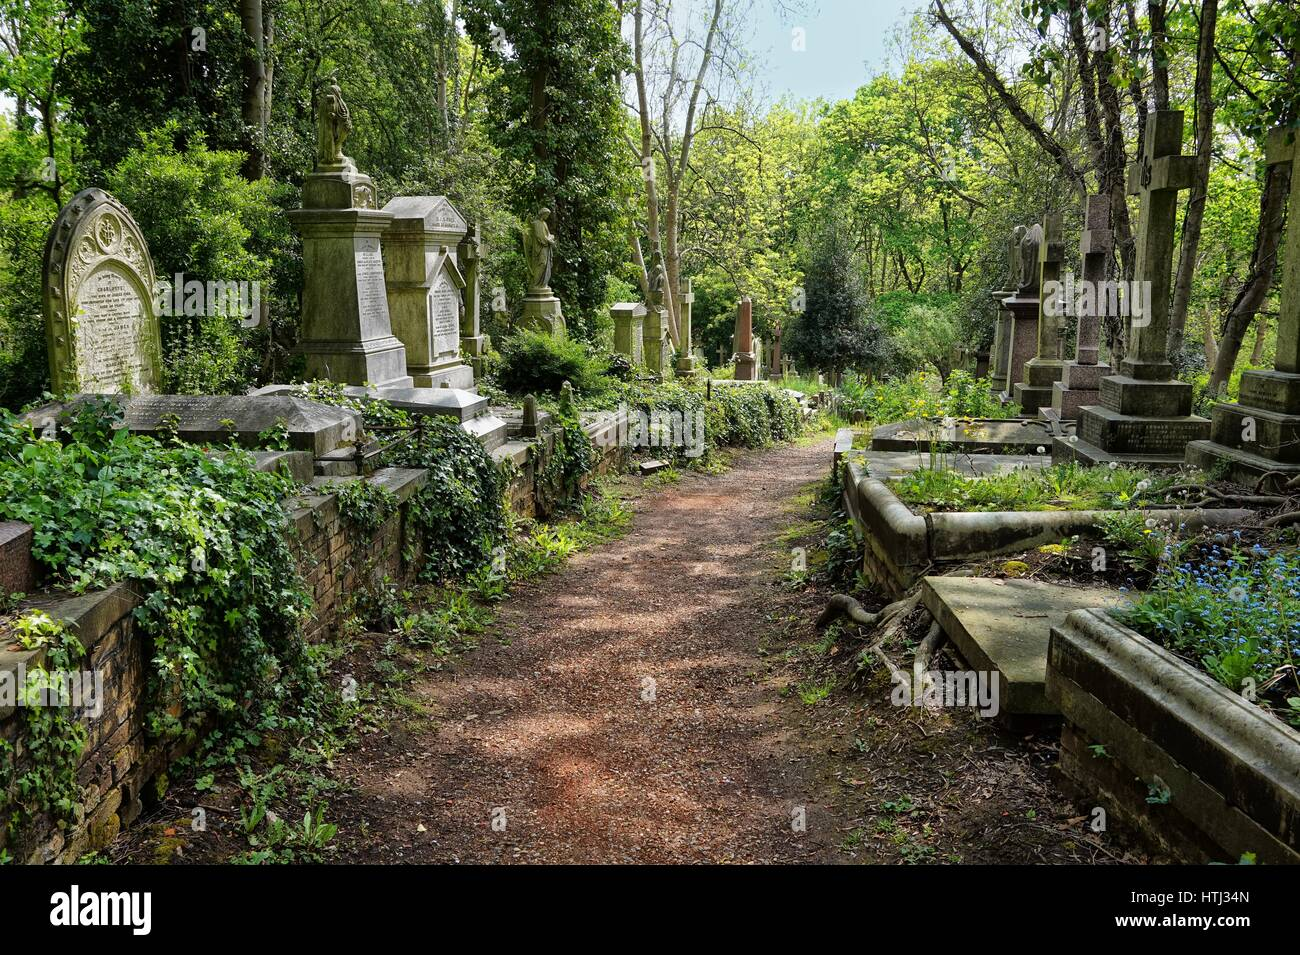 HIGHGATE, LONDON, UK - March 12, 2016: Graves in the East cemetery of Highgate Cemetery Stock Photo